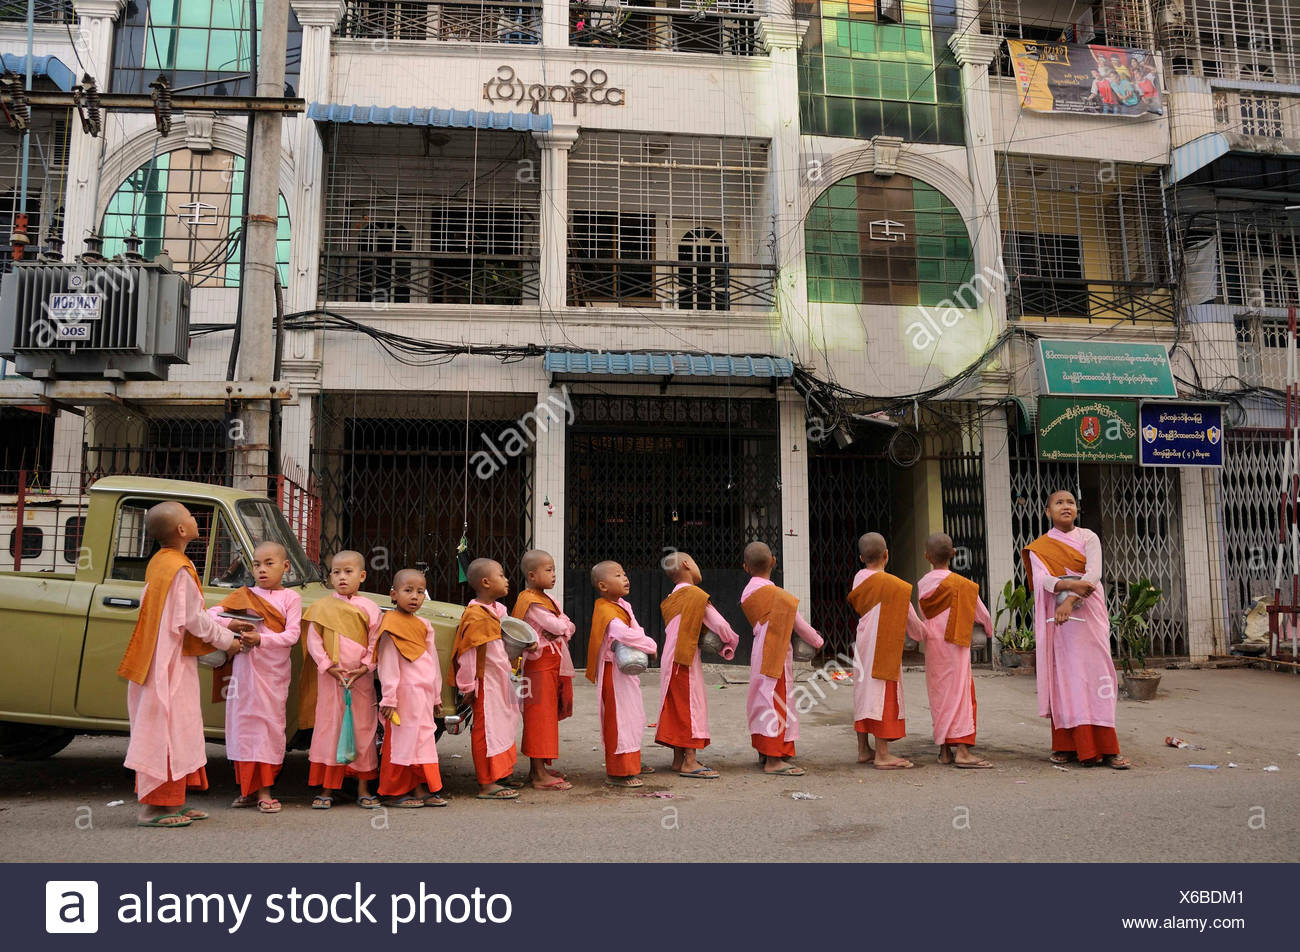 buddhist single women in tonasket Meet buddhist indonesian singles interested in dating there are 1000s of profiles to view for free at indonesiancupidcom - join today.